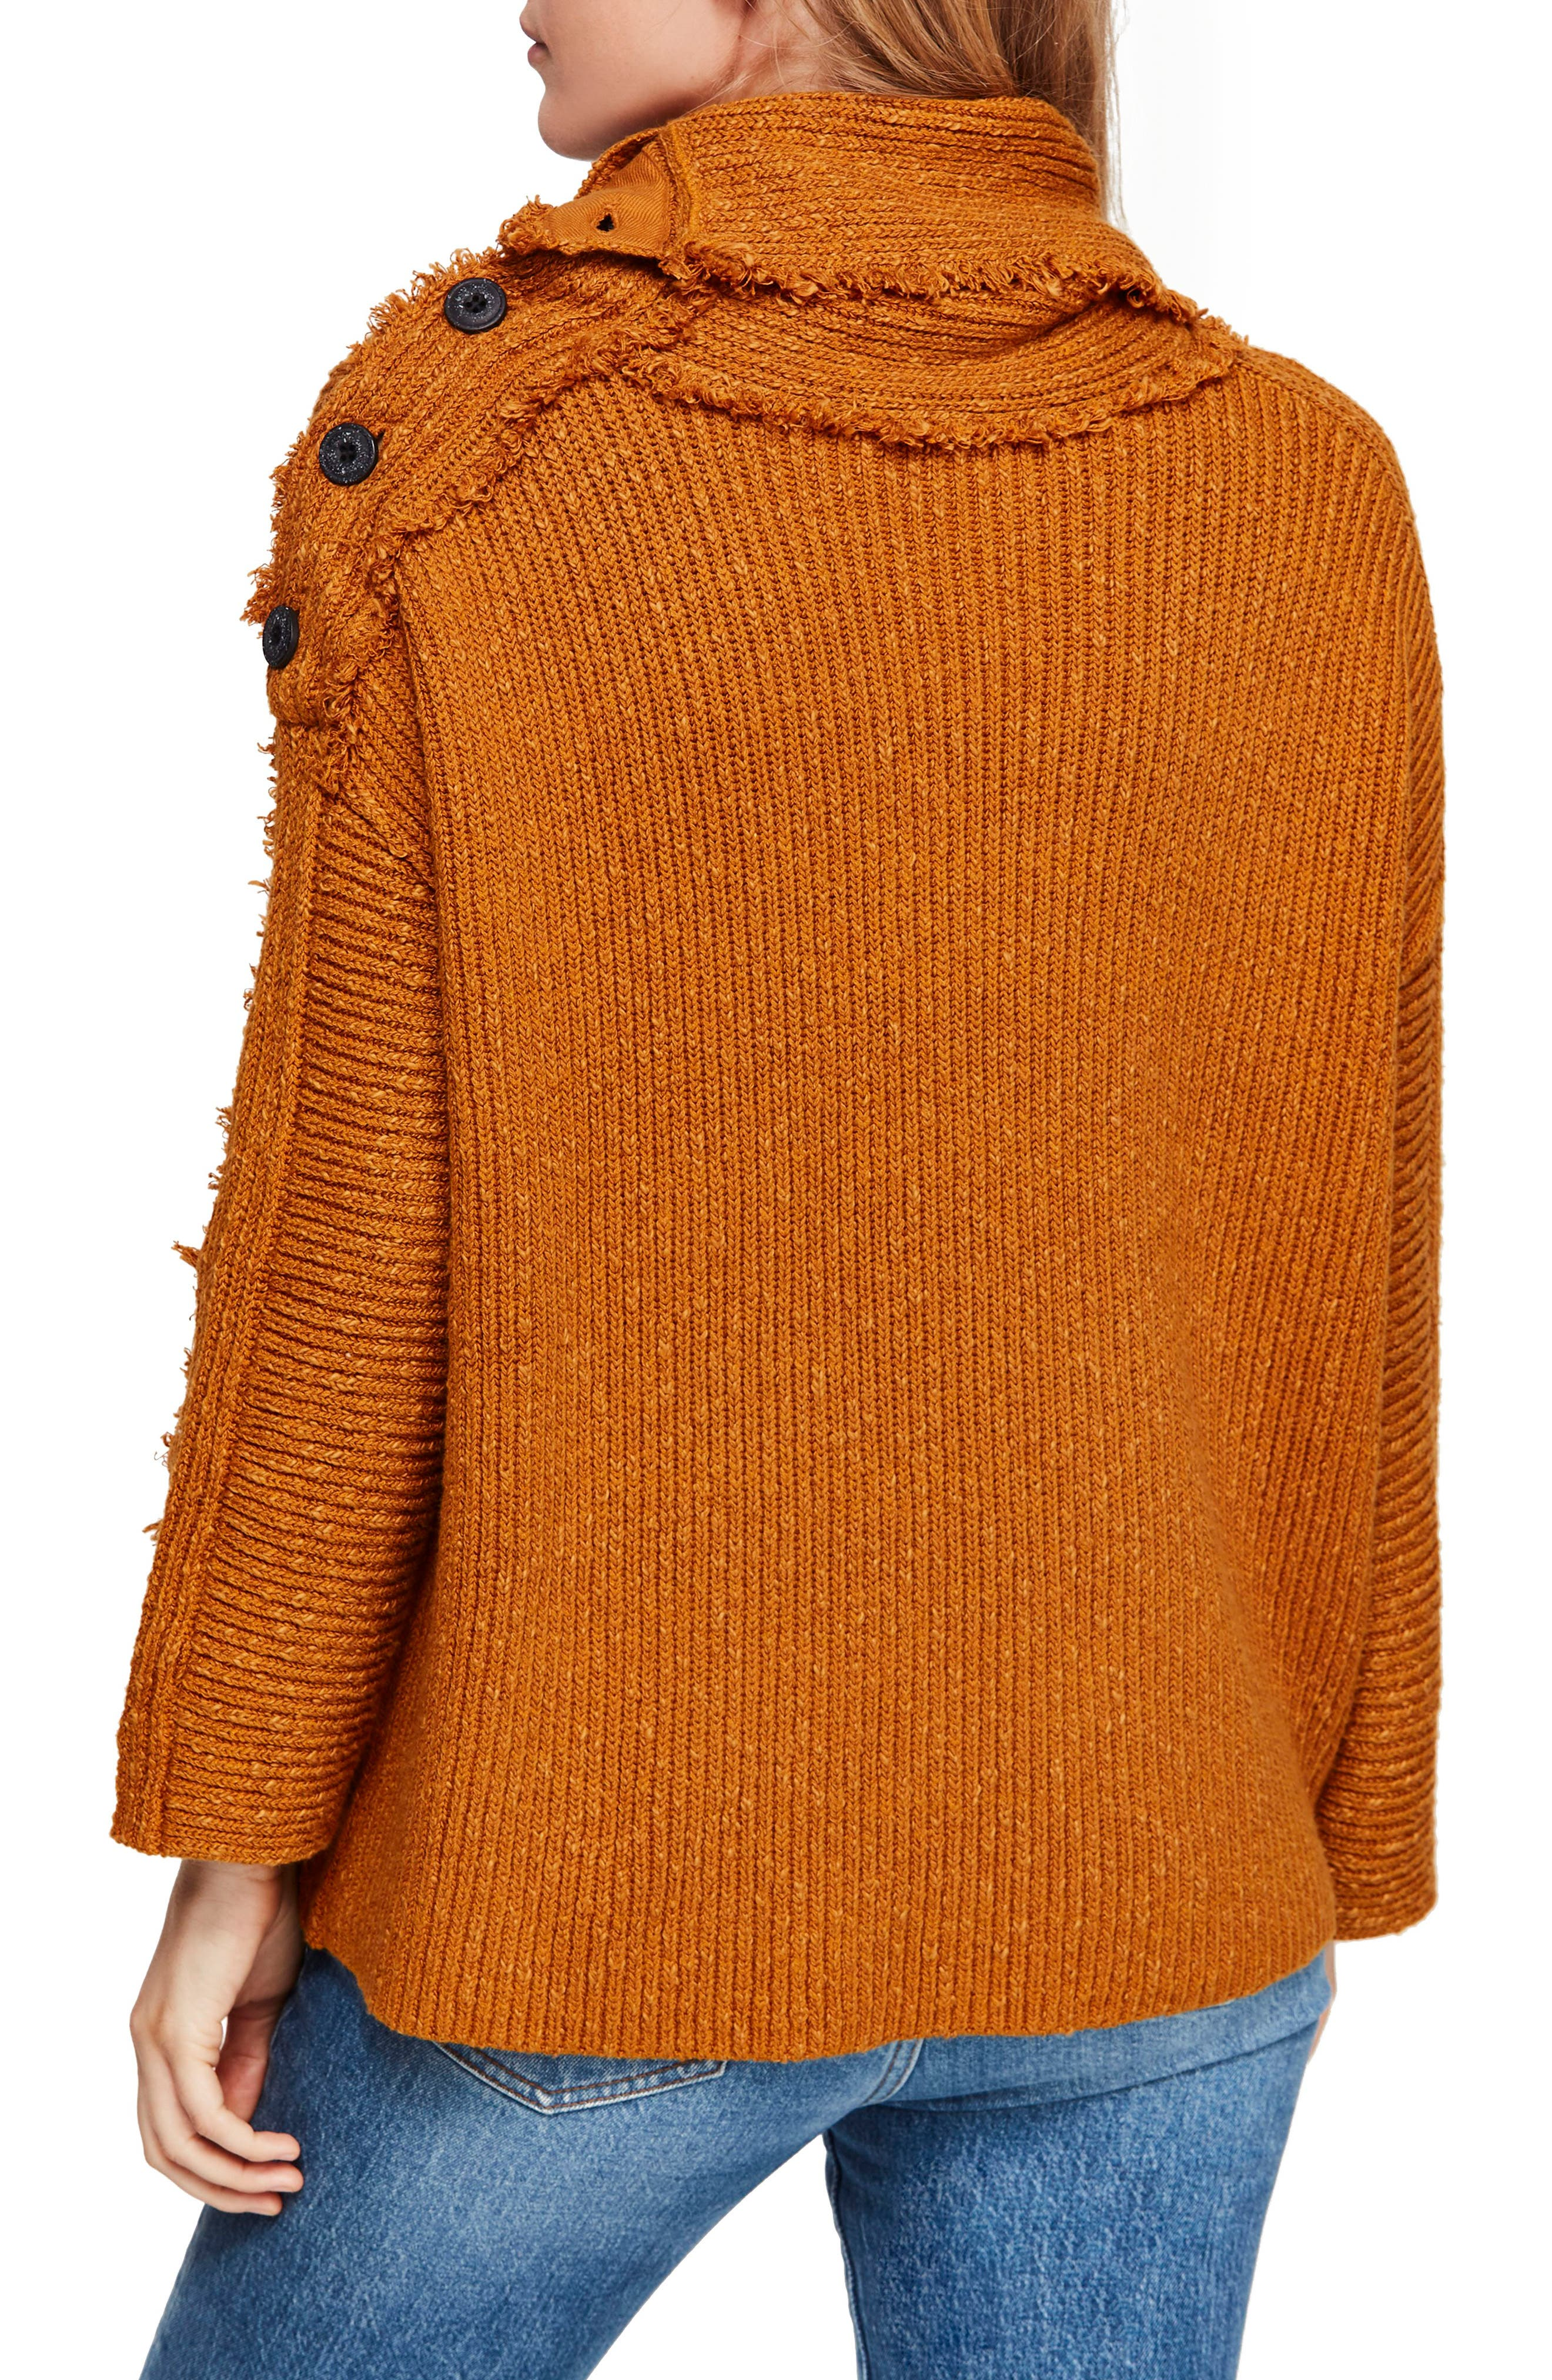 FREE PEOPLE, On My Side Turtleneck Sweater, Alternate thumbnail 2, color, 710